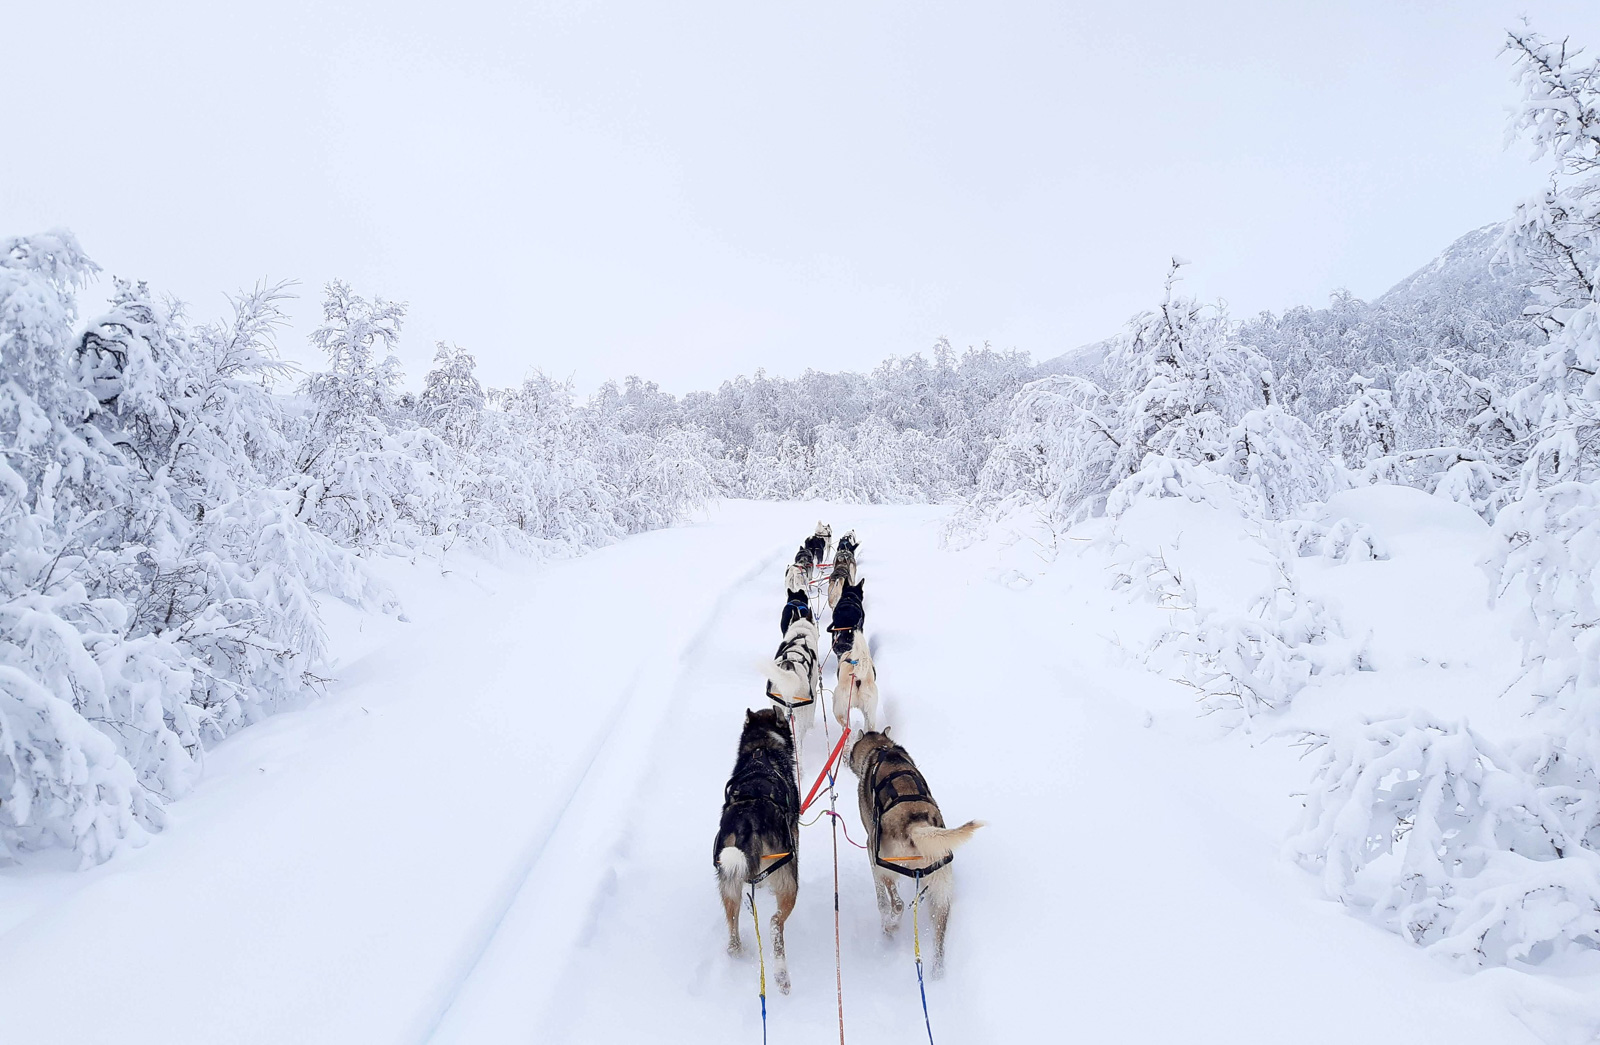 Magazine Nansen Stick Harness In Use, Mushing Cms